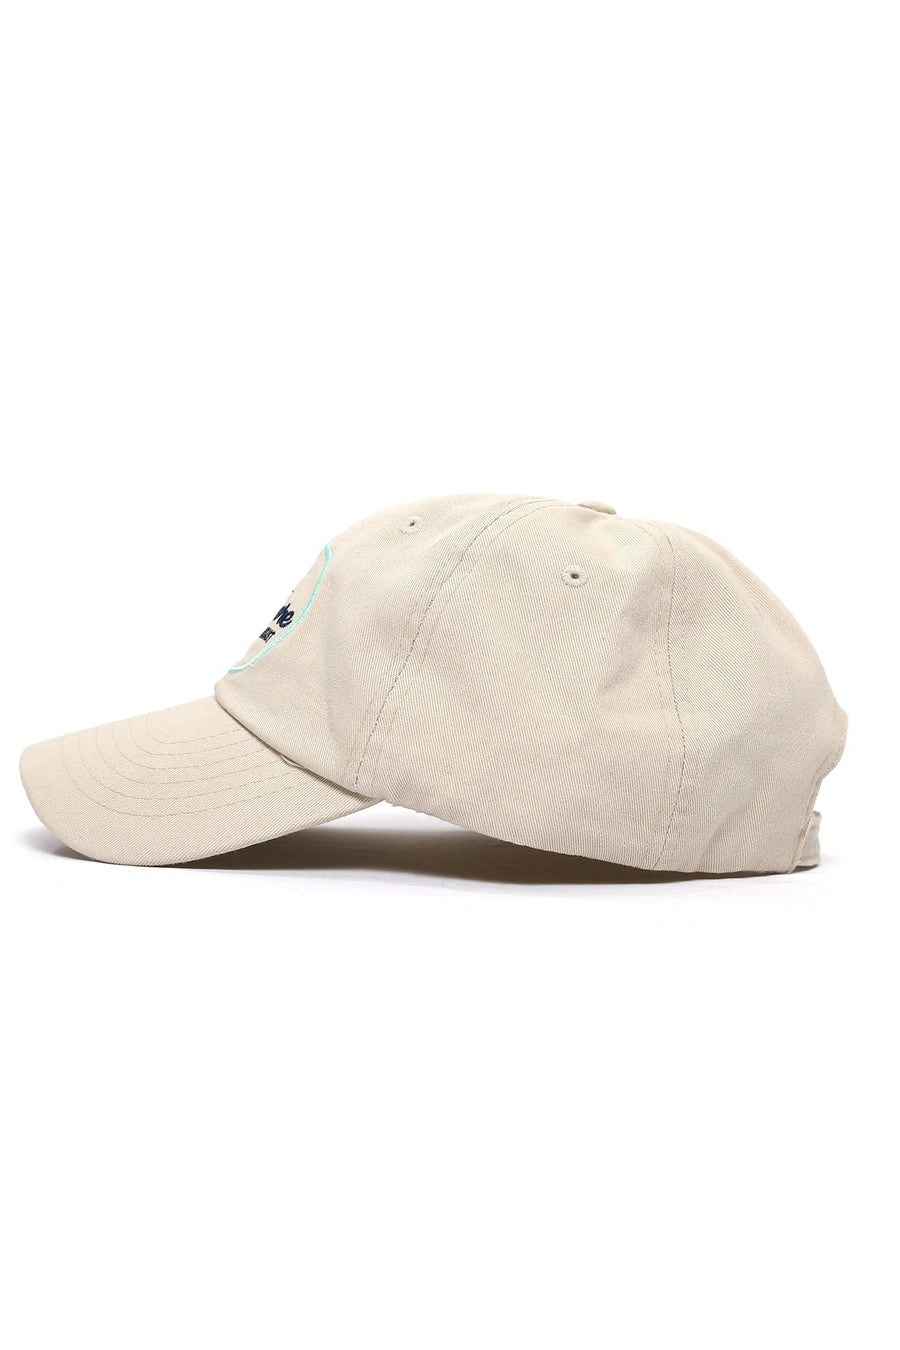 Coast to Coast Embroidered Cap - Khaki - Shore